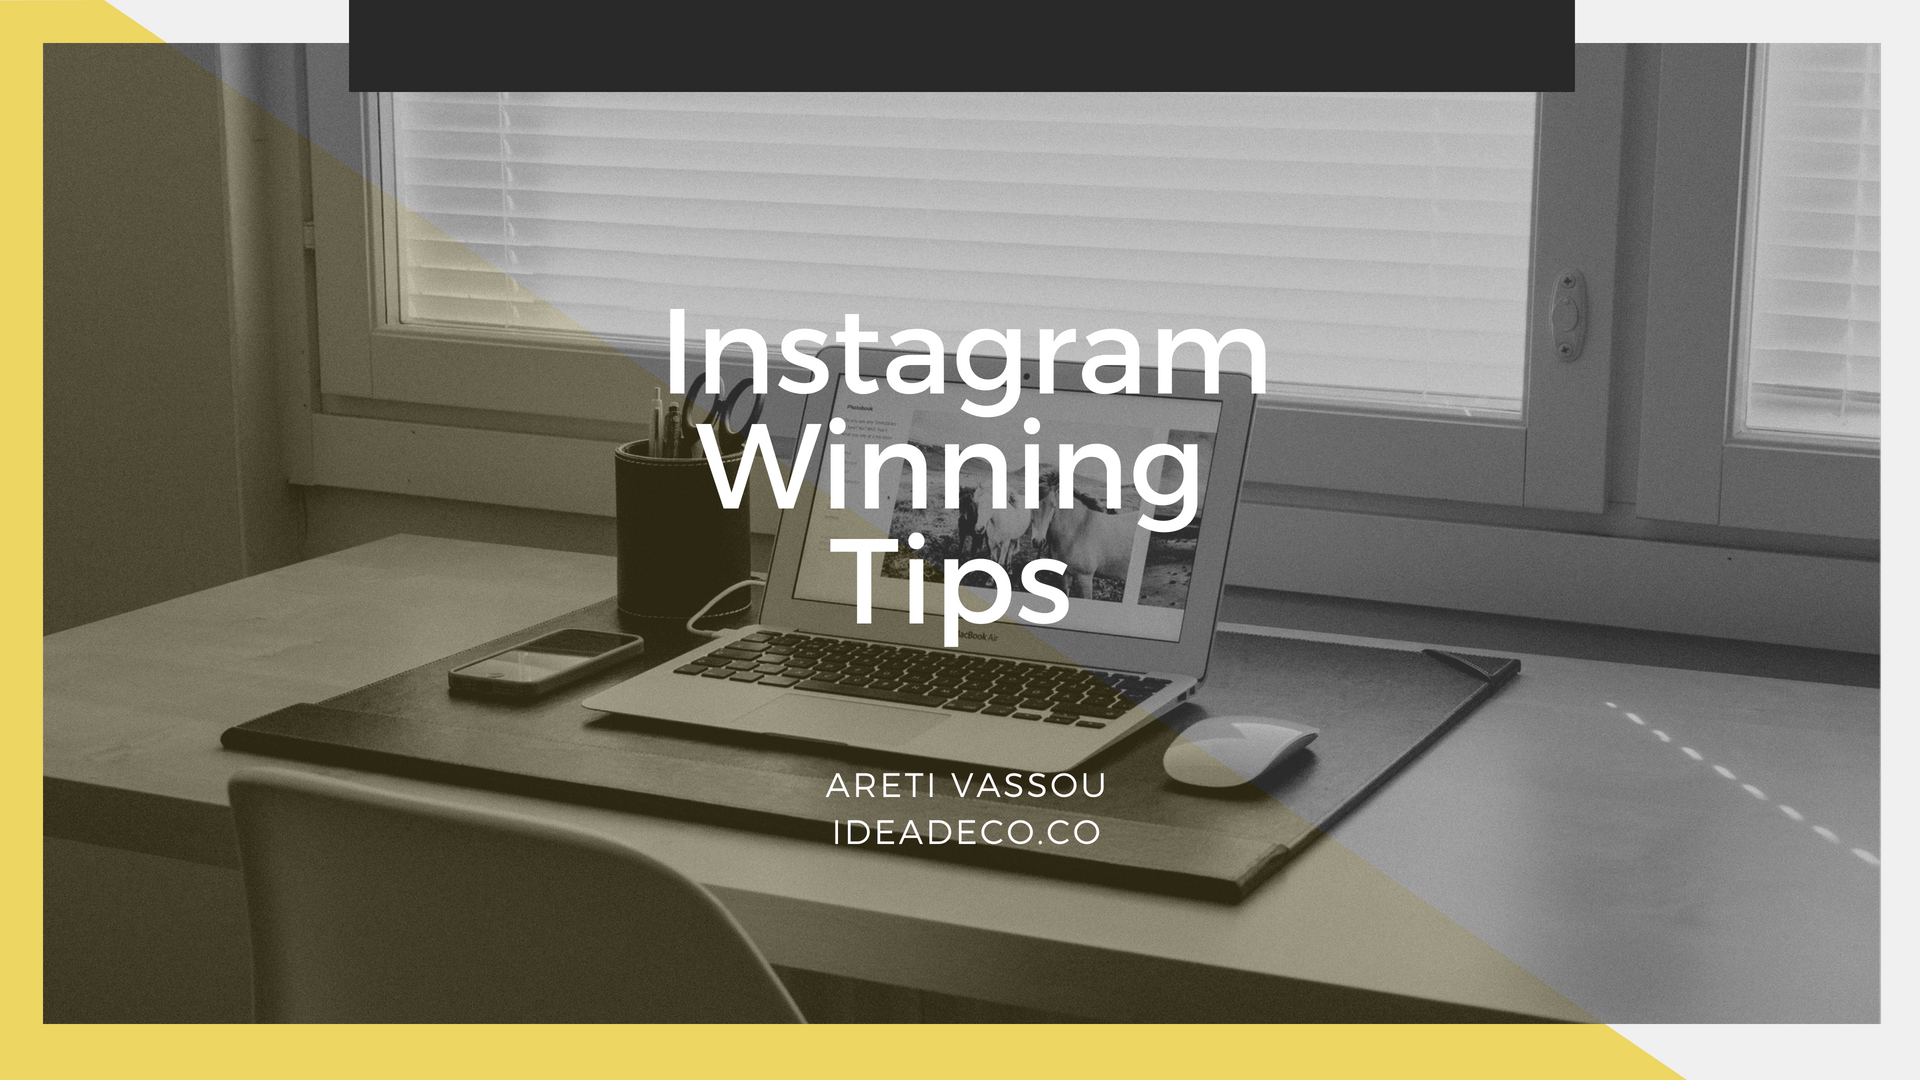 Instagram Winning Tips by Areti Vassou Ideadeco